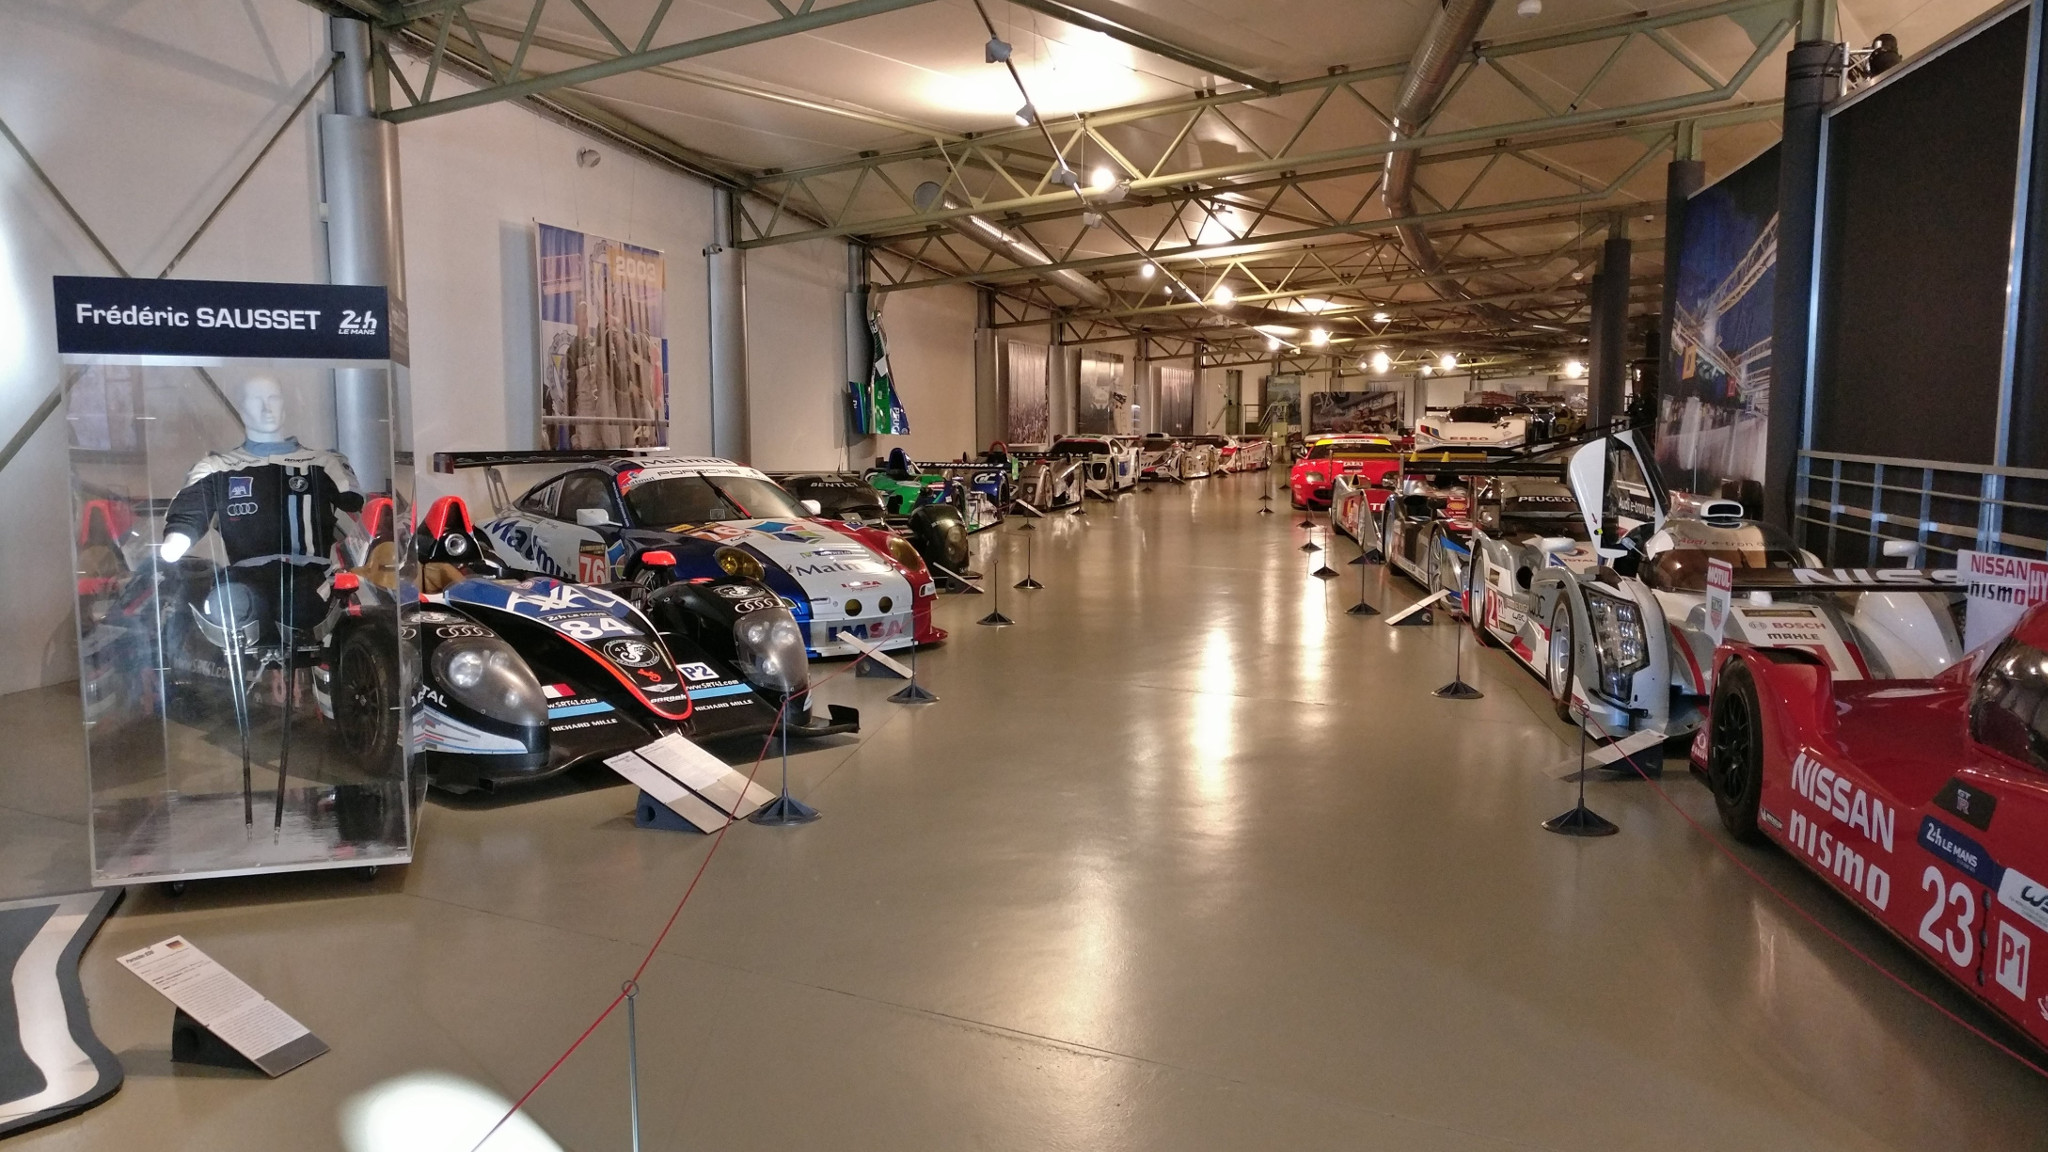 The last items in the collection of the Museum of the 24 Hours of Le Mans